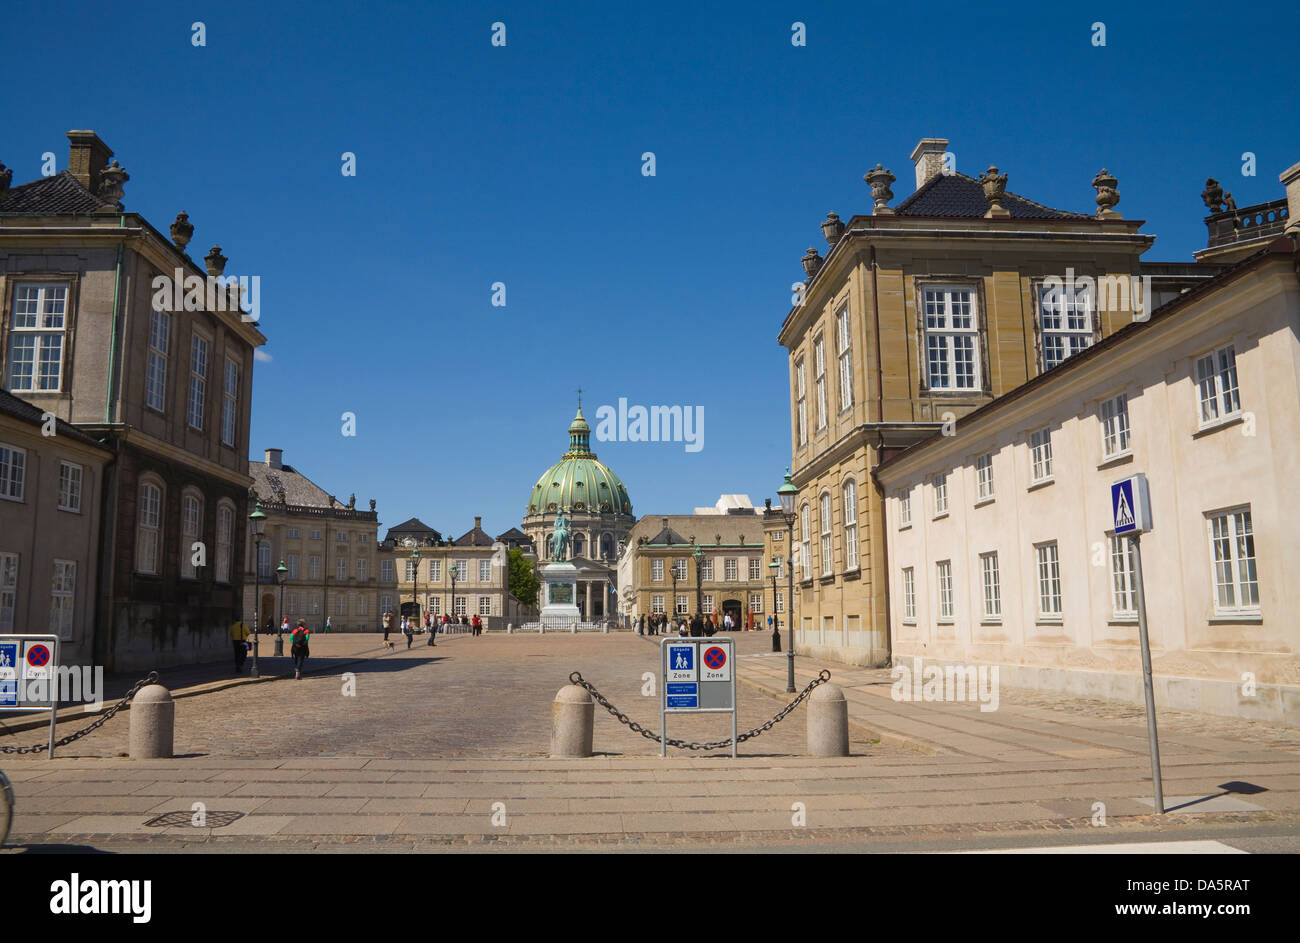 Copenhagen Denmark EU Amalienborg Palace winter residence of Danish Royal Family  King Frederick V statue in octagonal - Stock Image